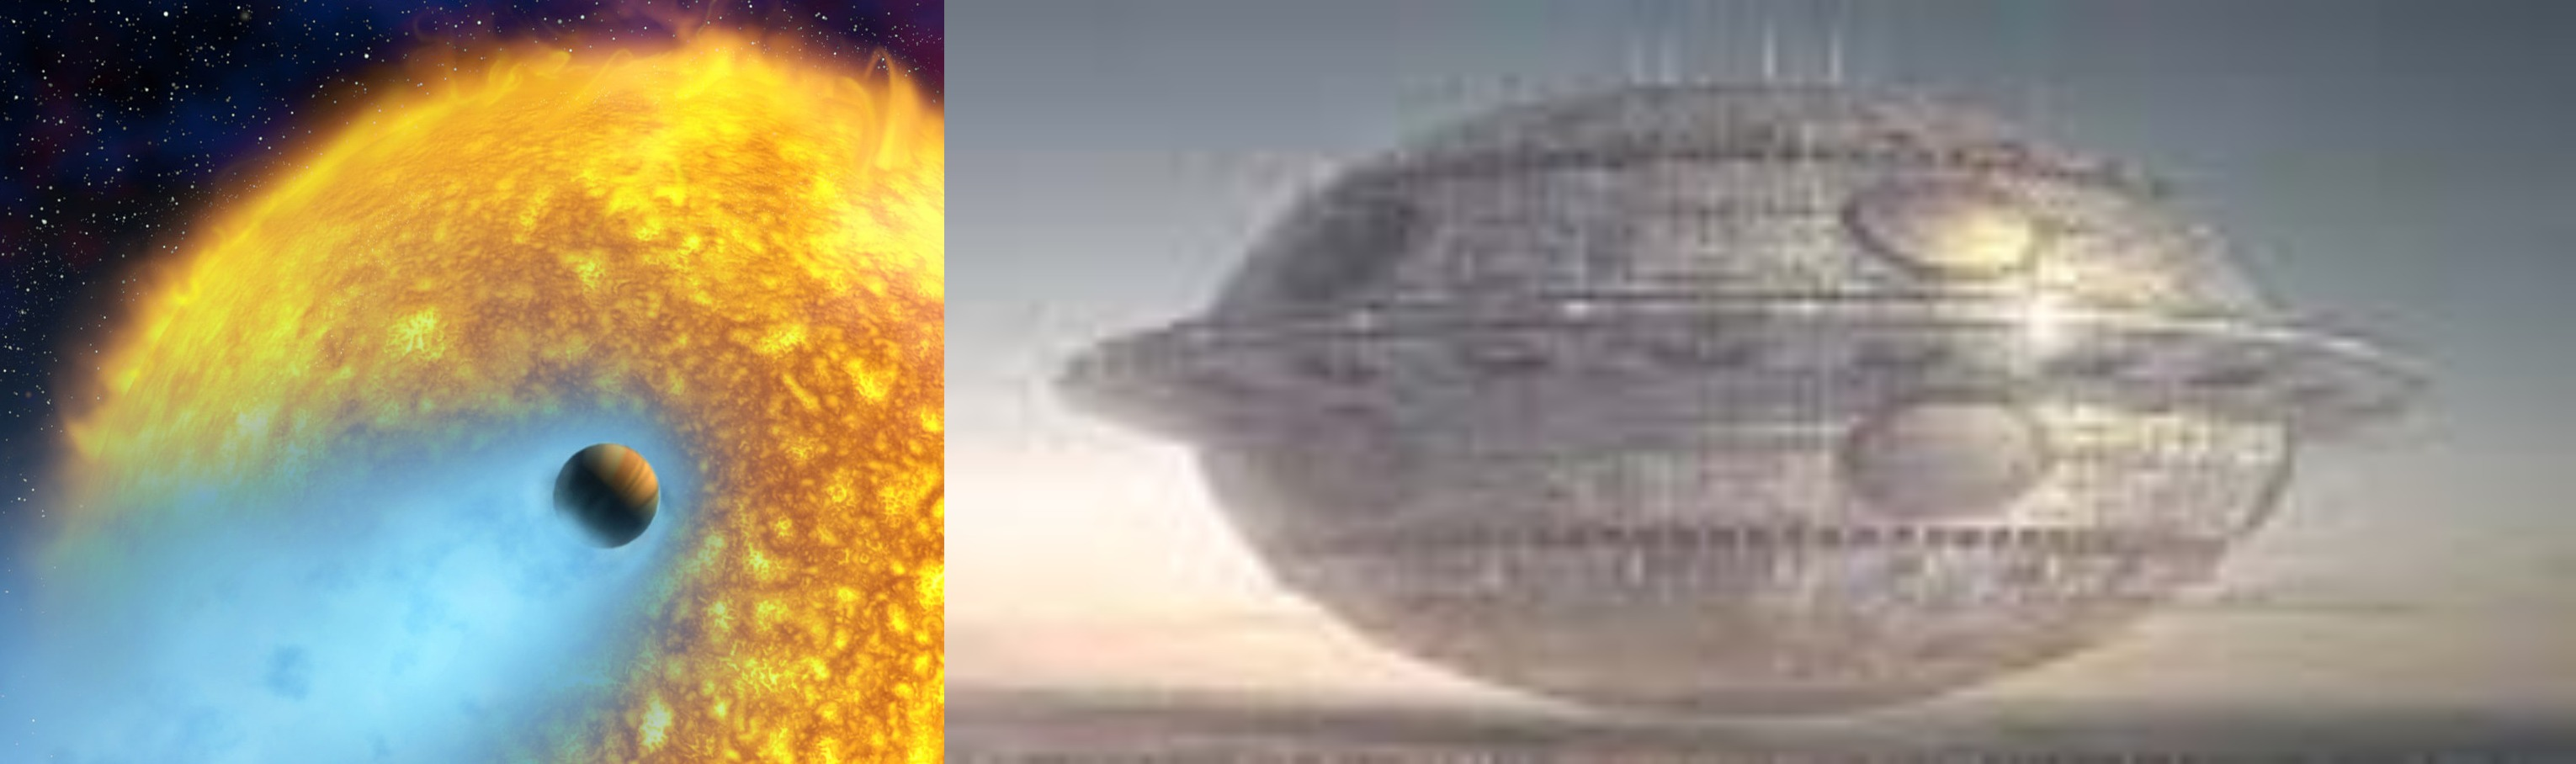 ancient real alien related search images hindi earth wikipedi videos proof pictures News Species Contact abduction GOOGL space nasa photos Mars Unidentified flying object UFOs crop circles